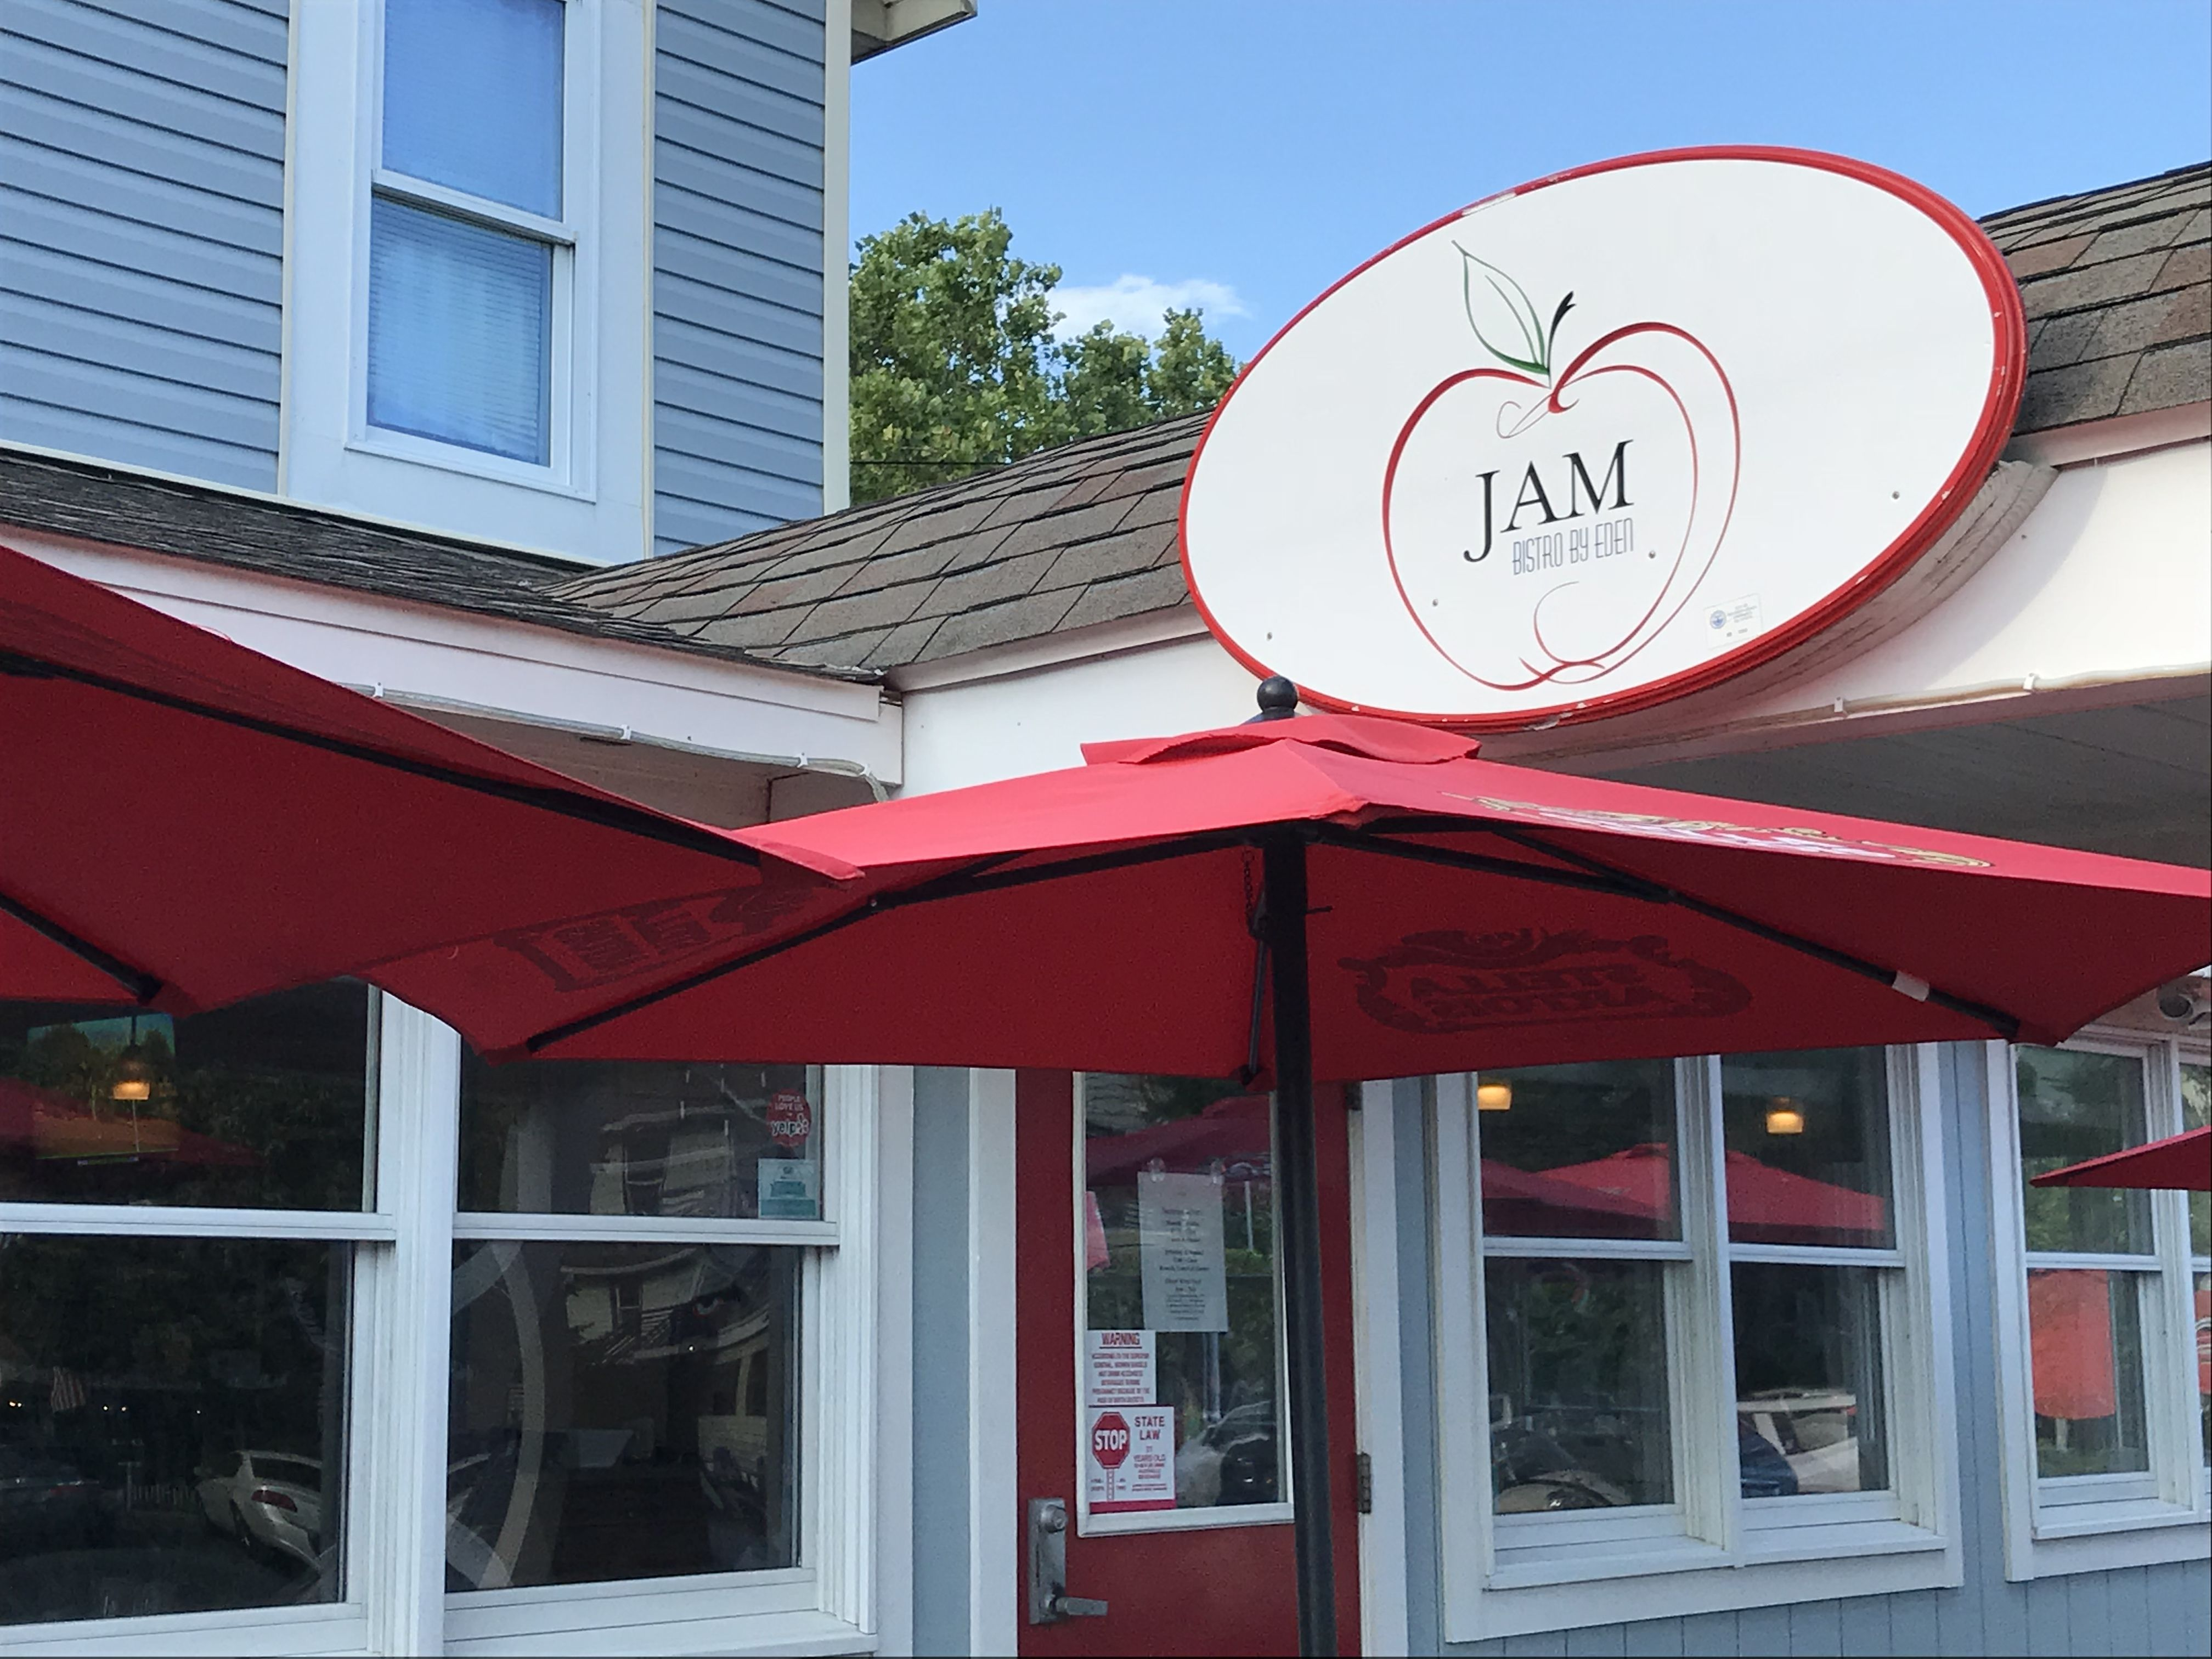 Jam Bistro By Eden This Restaurant Is Located At 21 Baltimore Ave This Is Eden Restaurant S More Casual Restaurant Rehoboth Beach Casual Restaurants Rehoboth